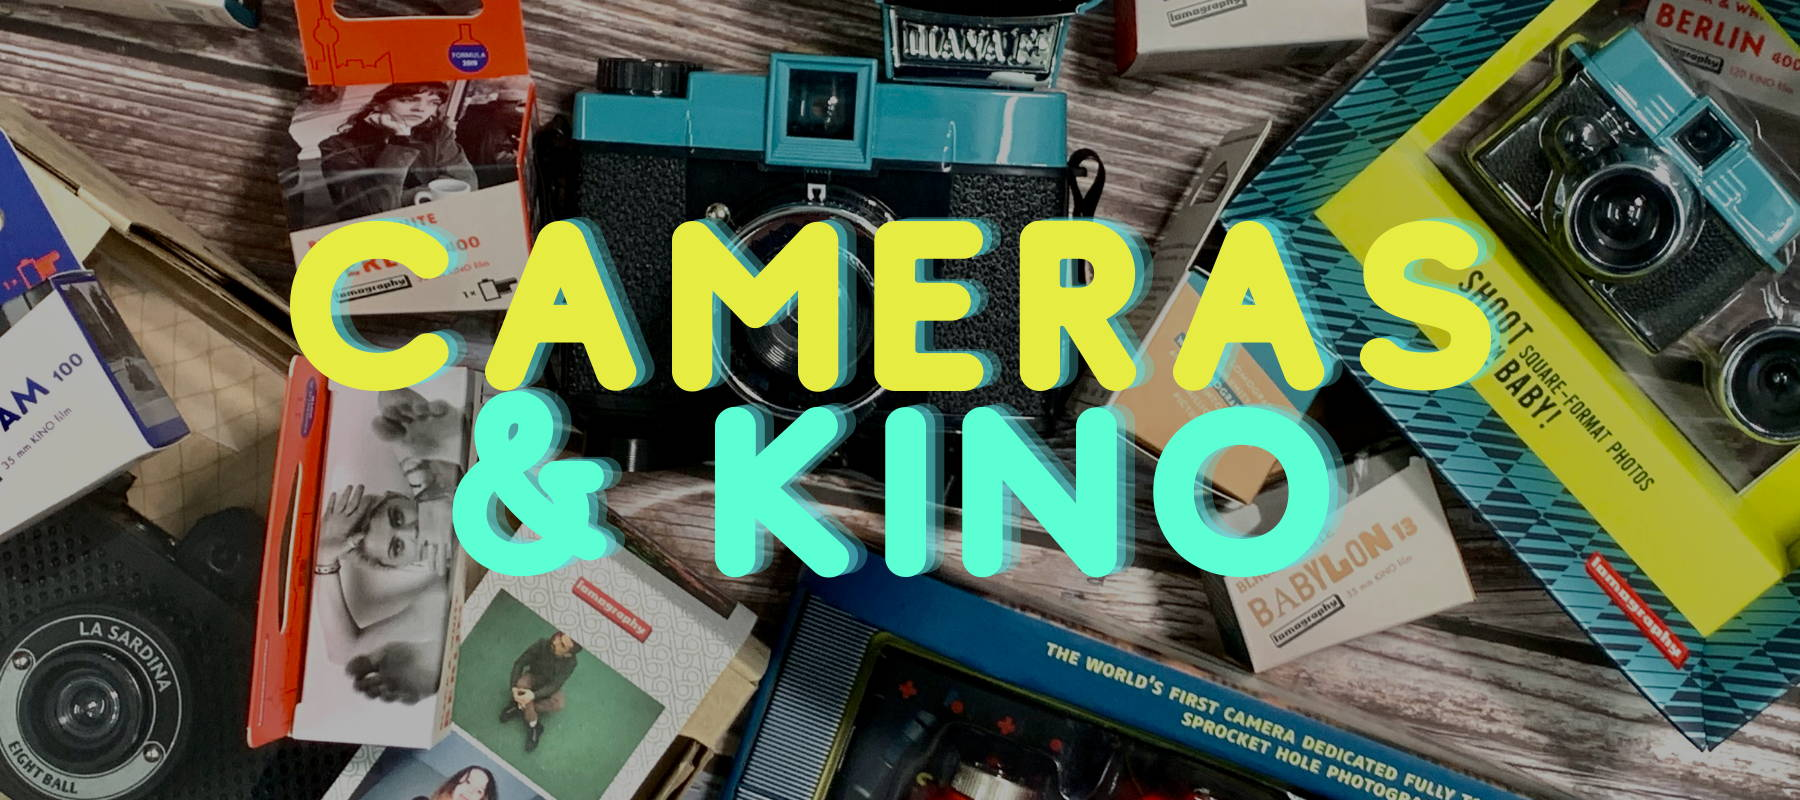 Lomography Cameras and Kino